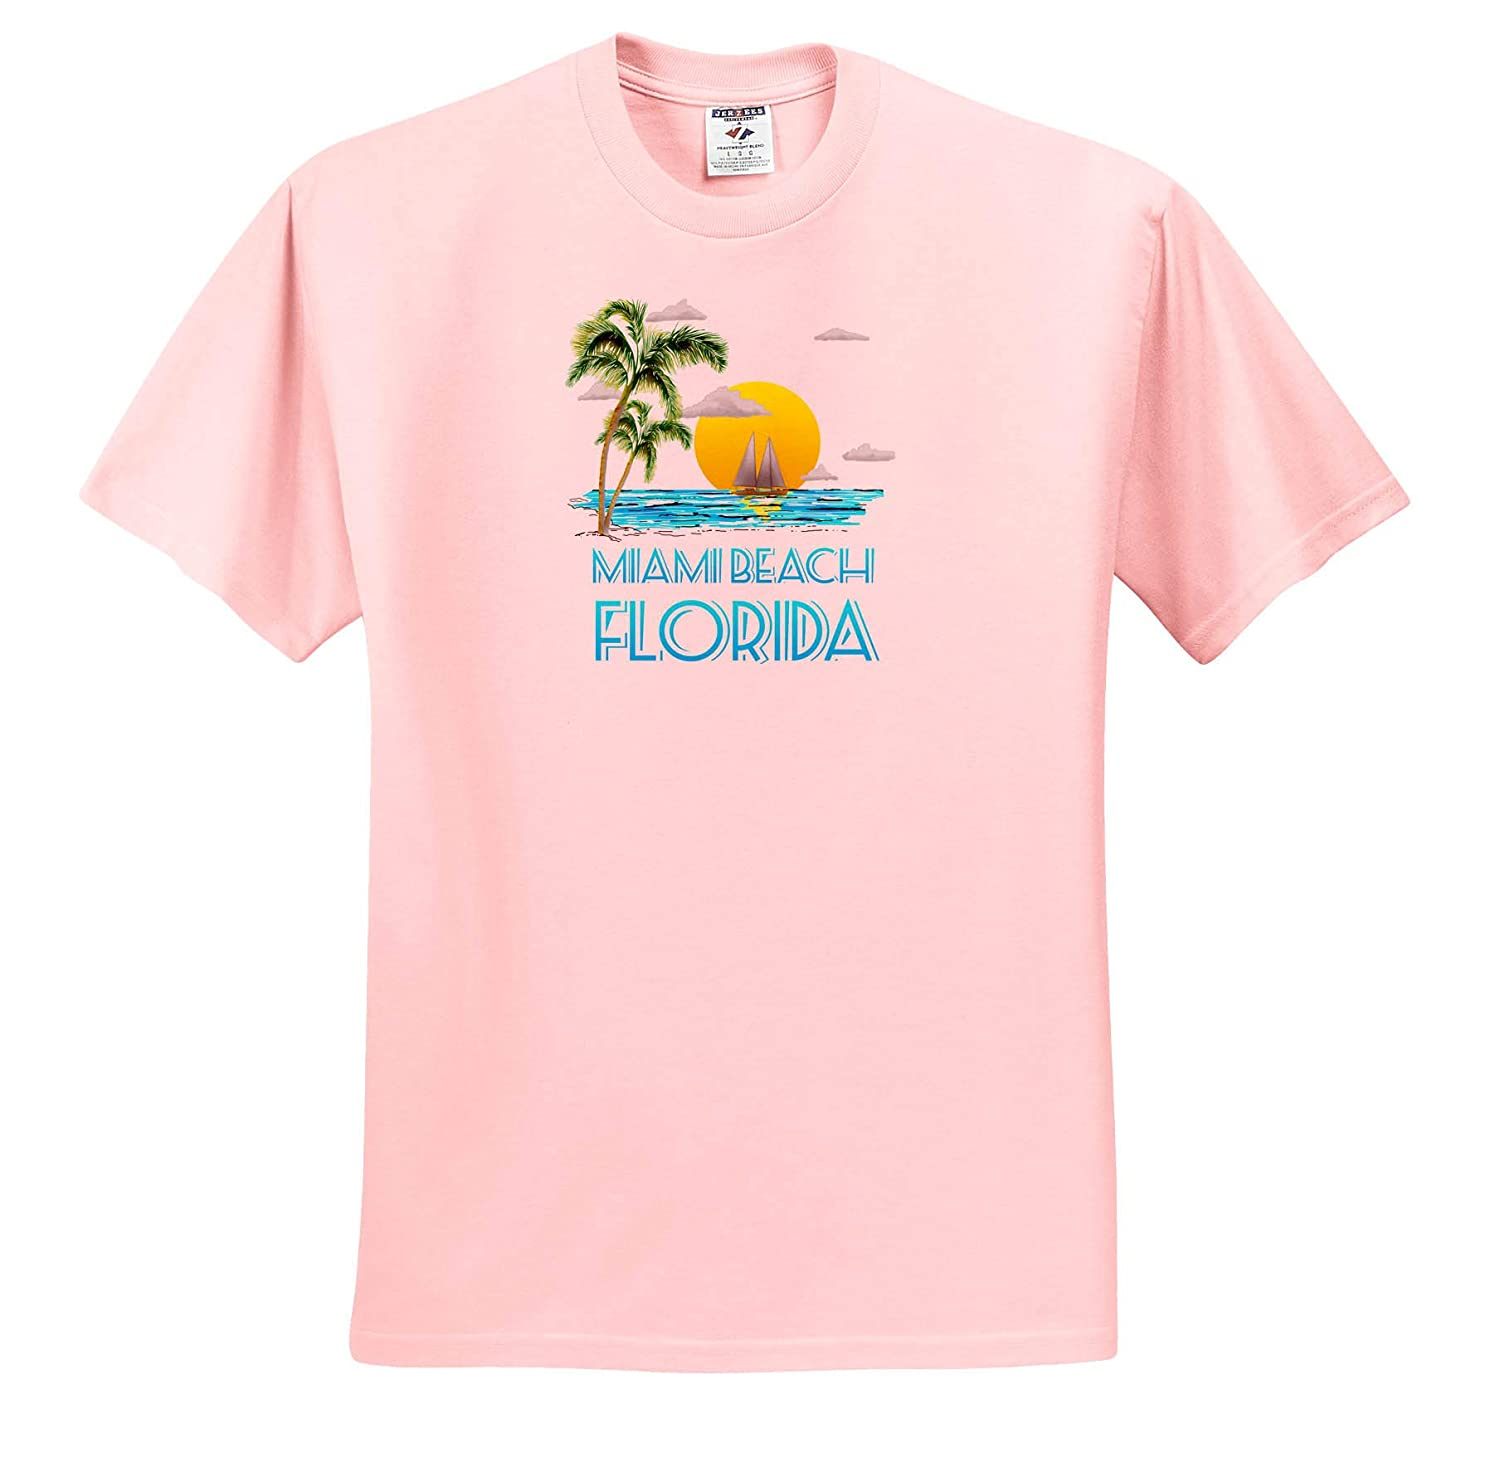 3dRose Macdonald Creative Studios Nautical Sailing Beach Design for The Miami Beach Florida - T-Shirts Florida